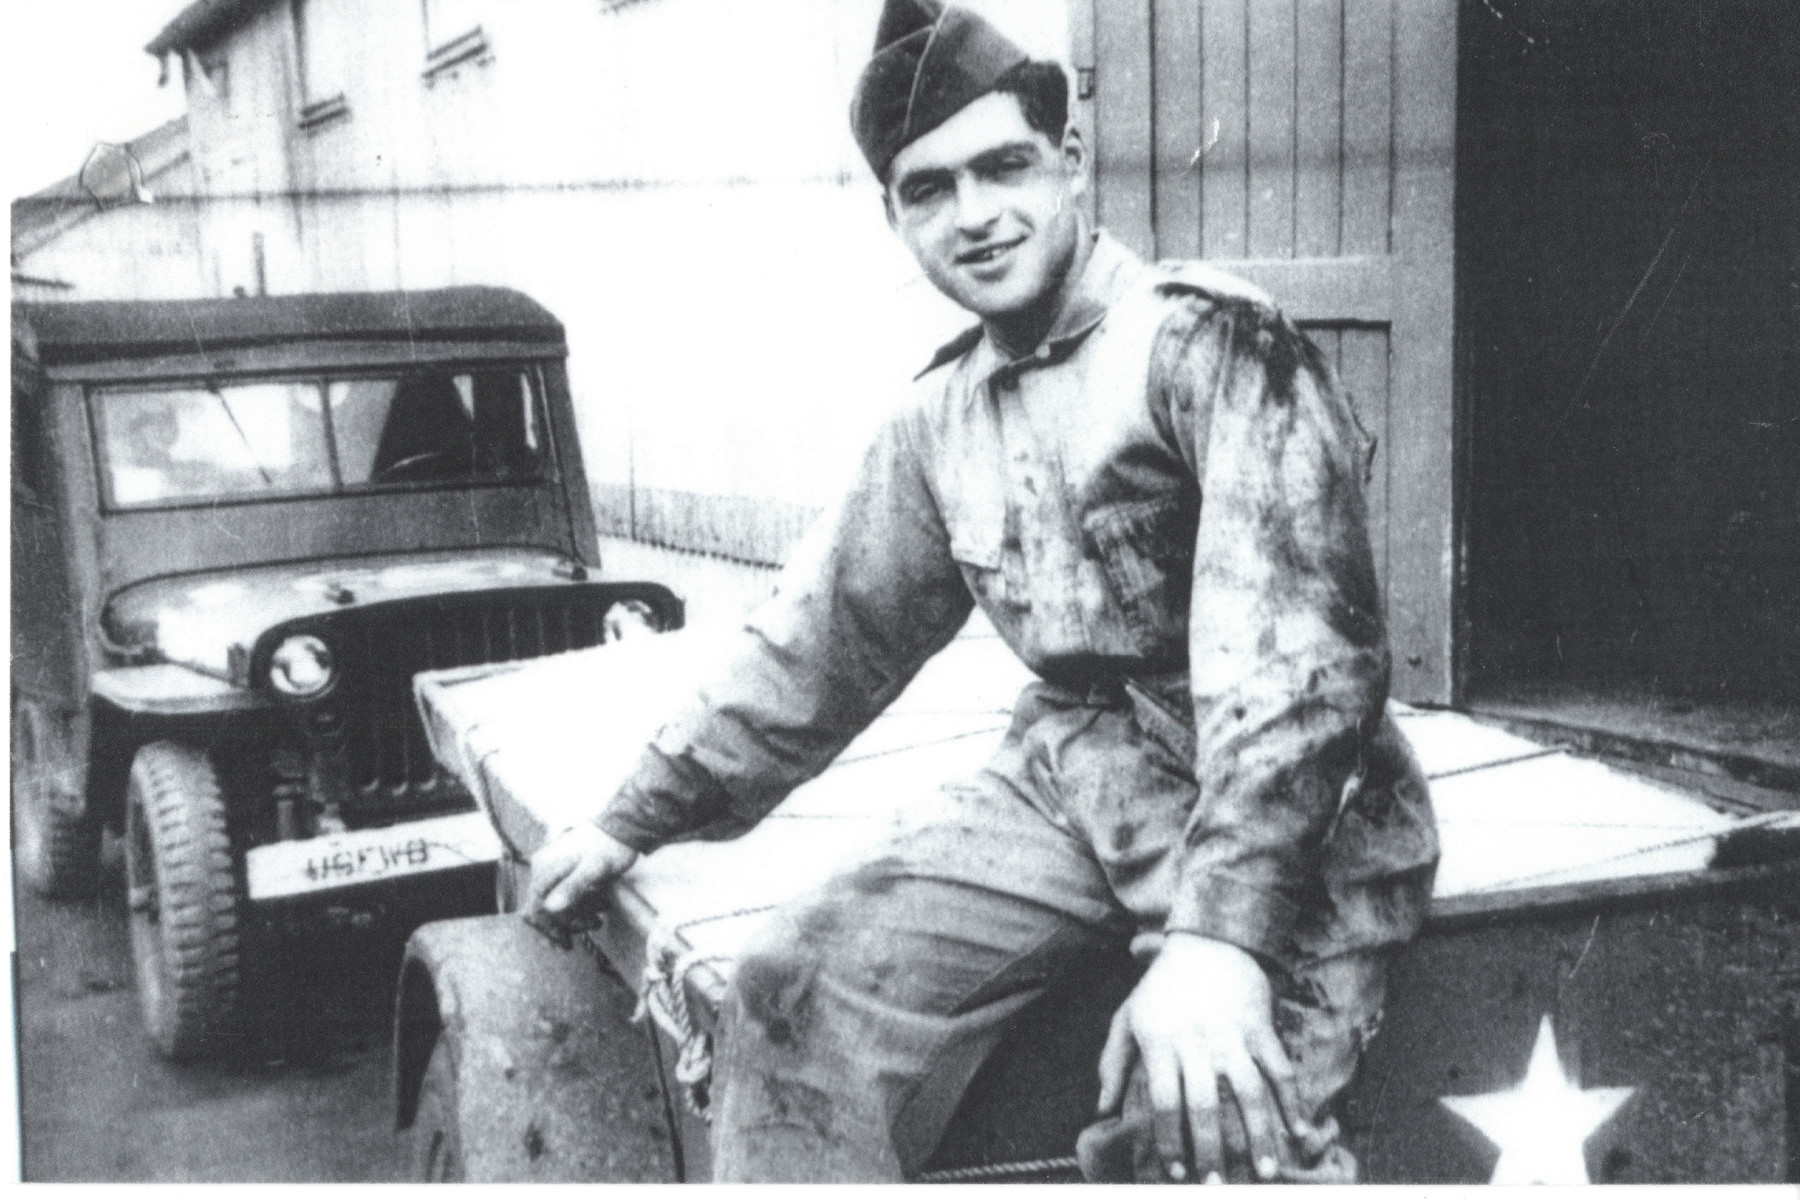 David Marcus seated on a military vehicle.